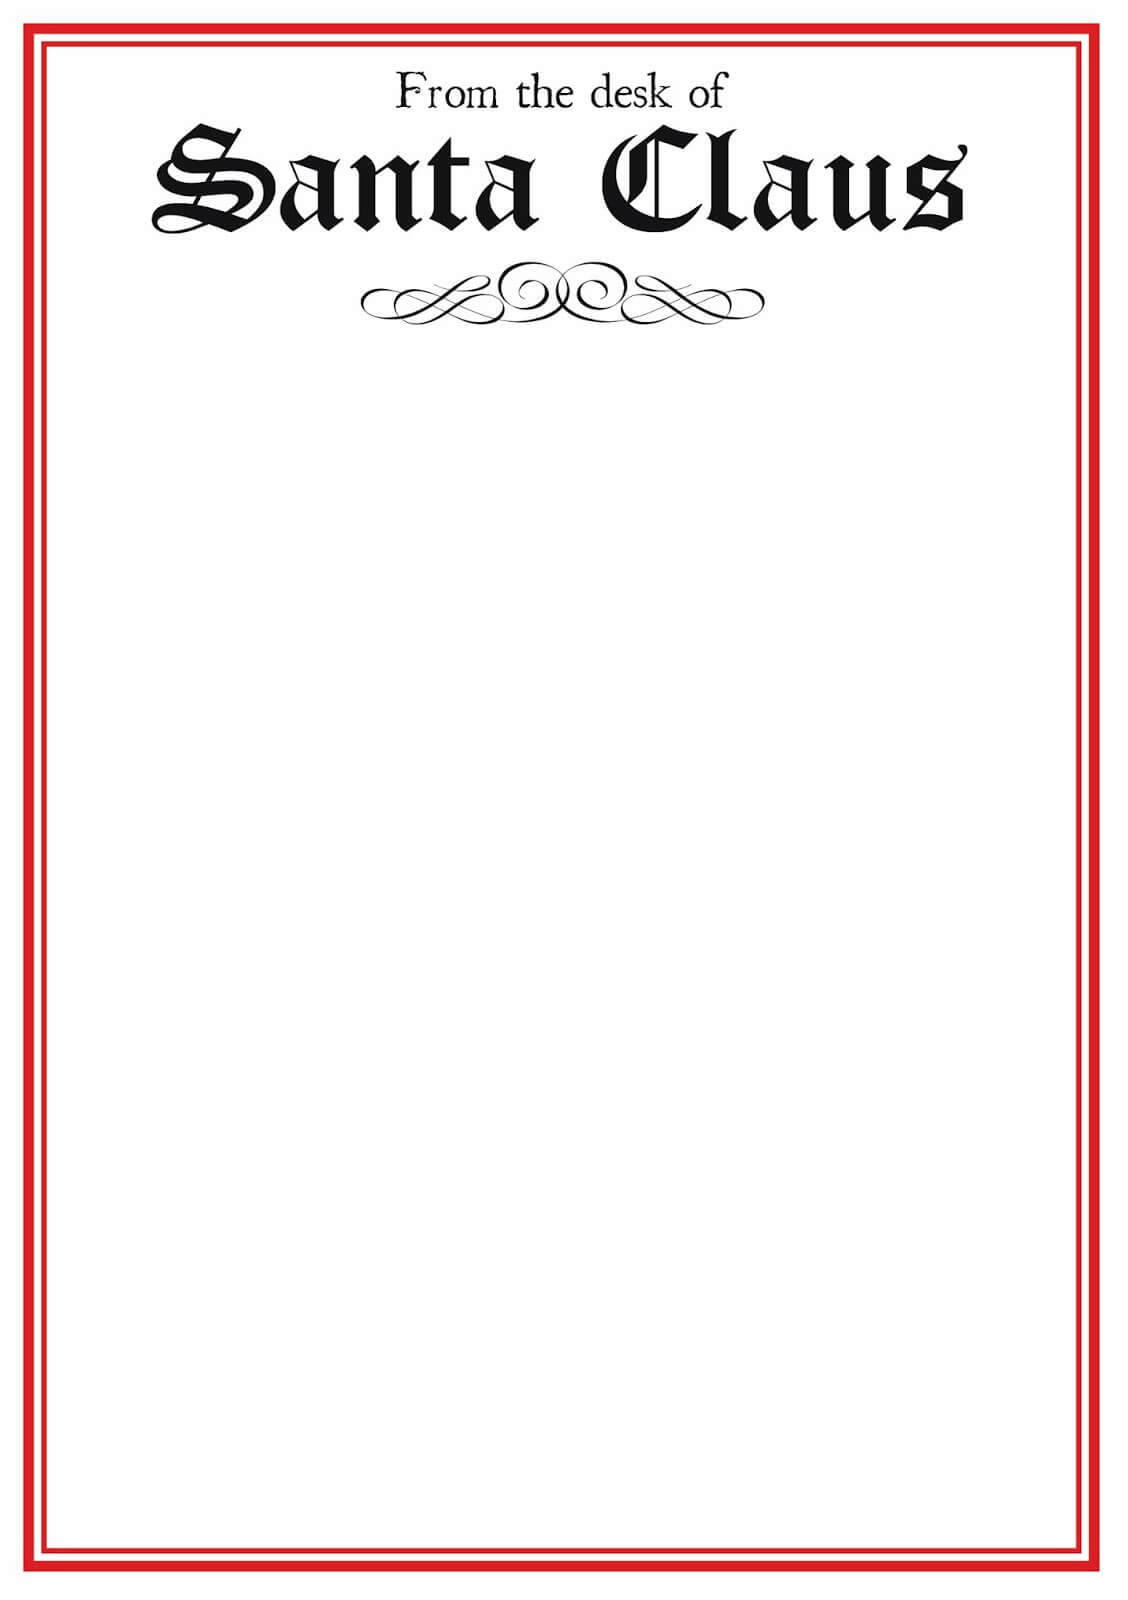 Free Printable Letter From Santa Template Word Collection With Regard To Letter From Santa Template Word